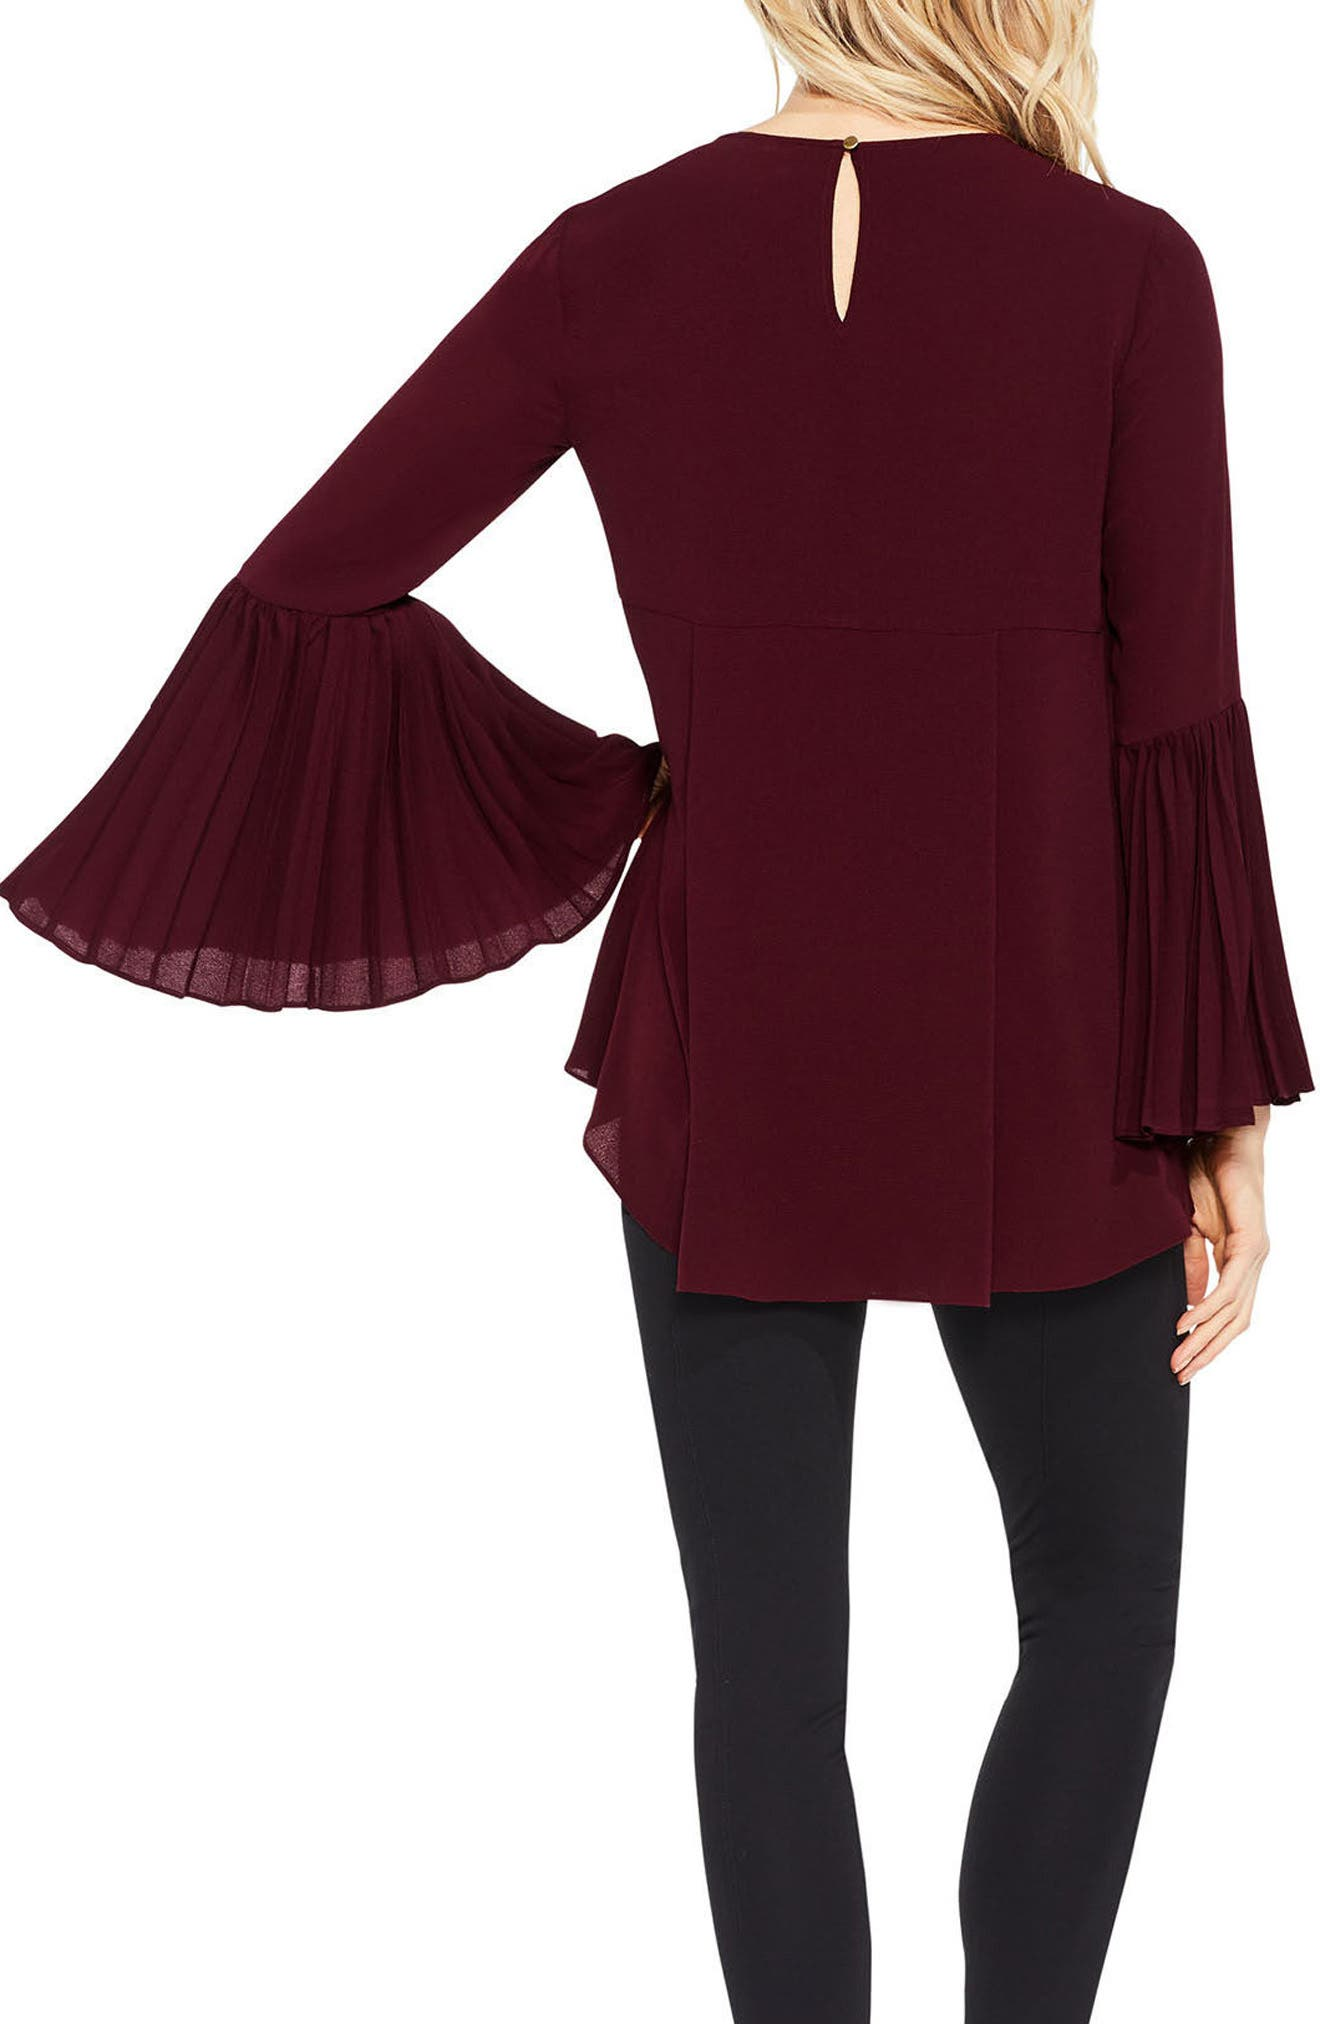 Pleat Bell Sleeve Blouse,                             Alternate thumbnail 5, color,